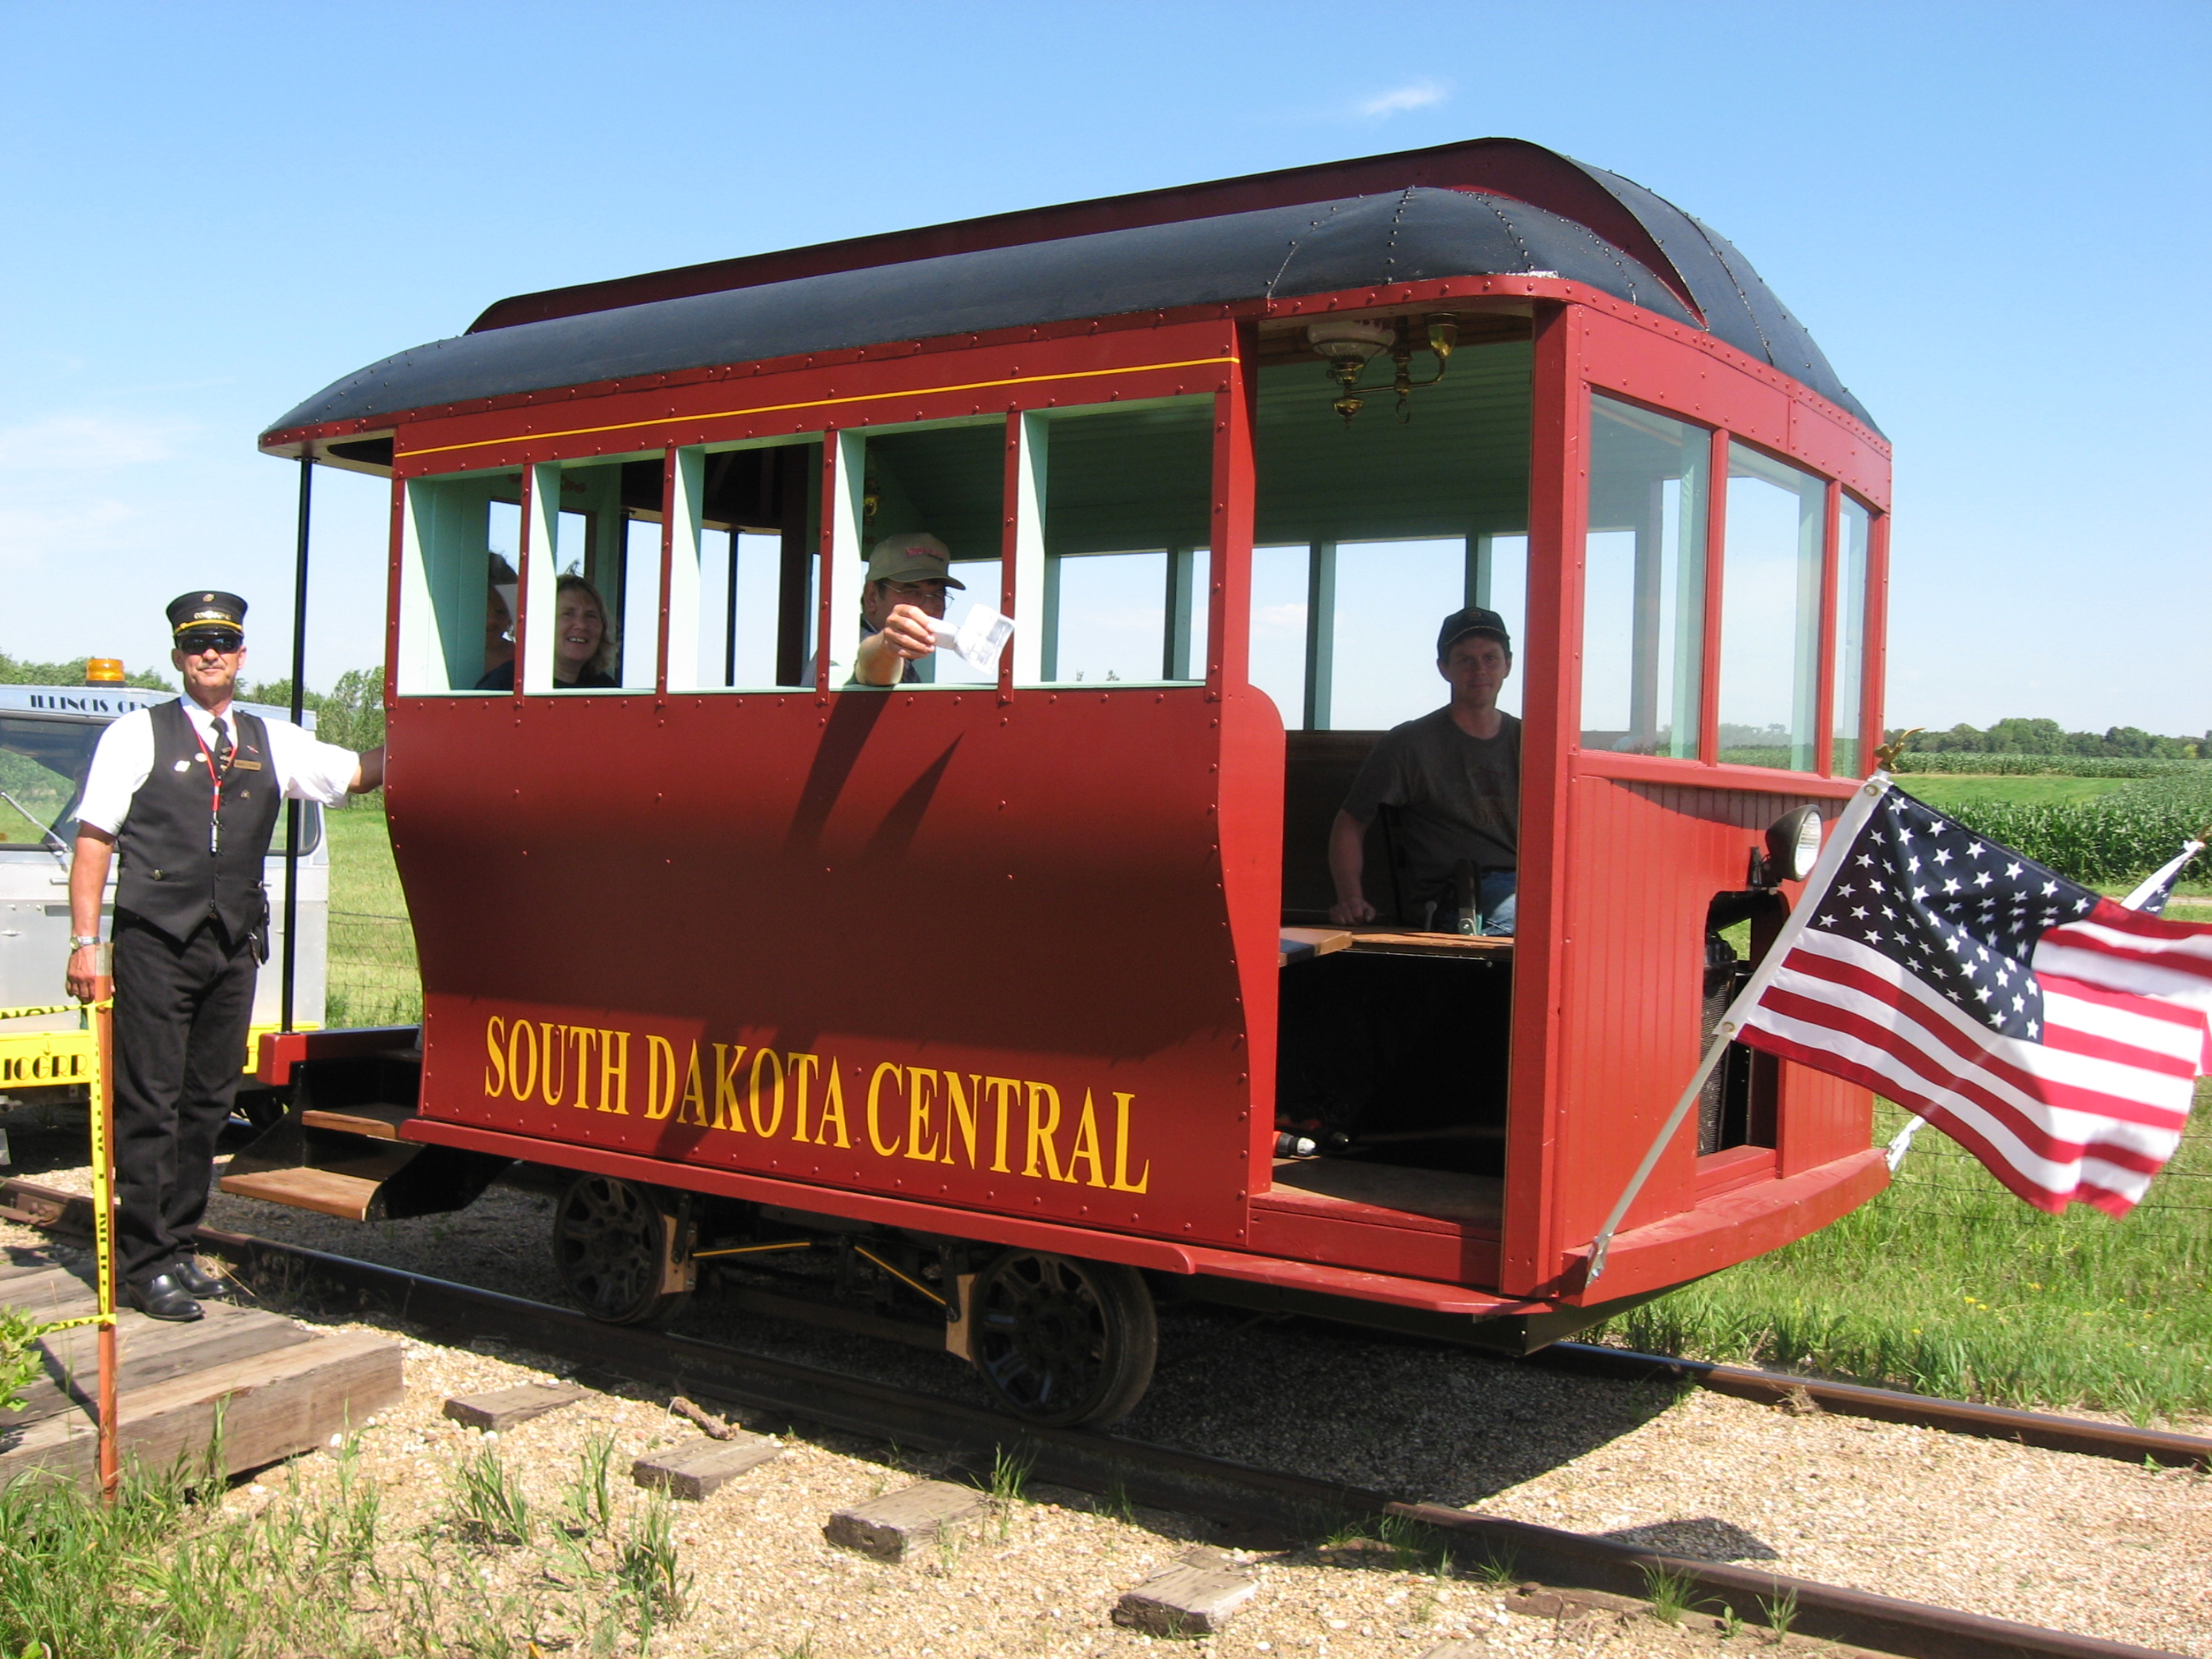 The Prairie Village Doodlebug rail car